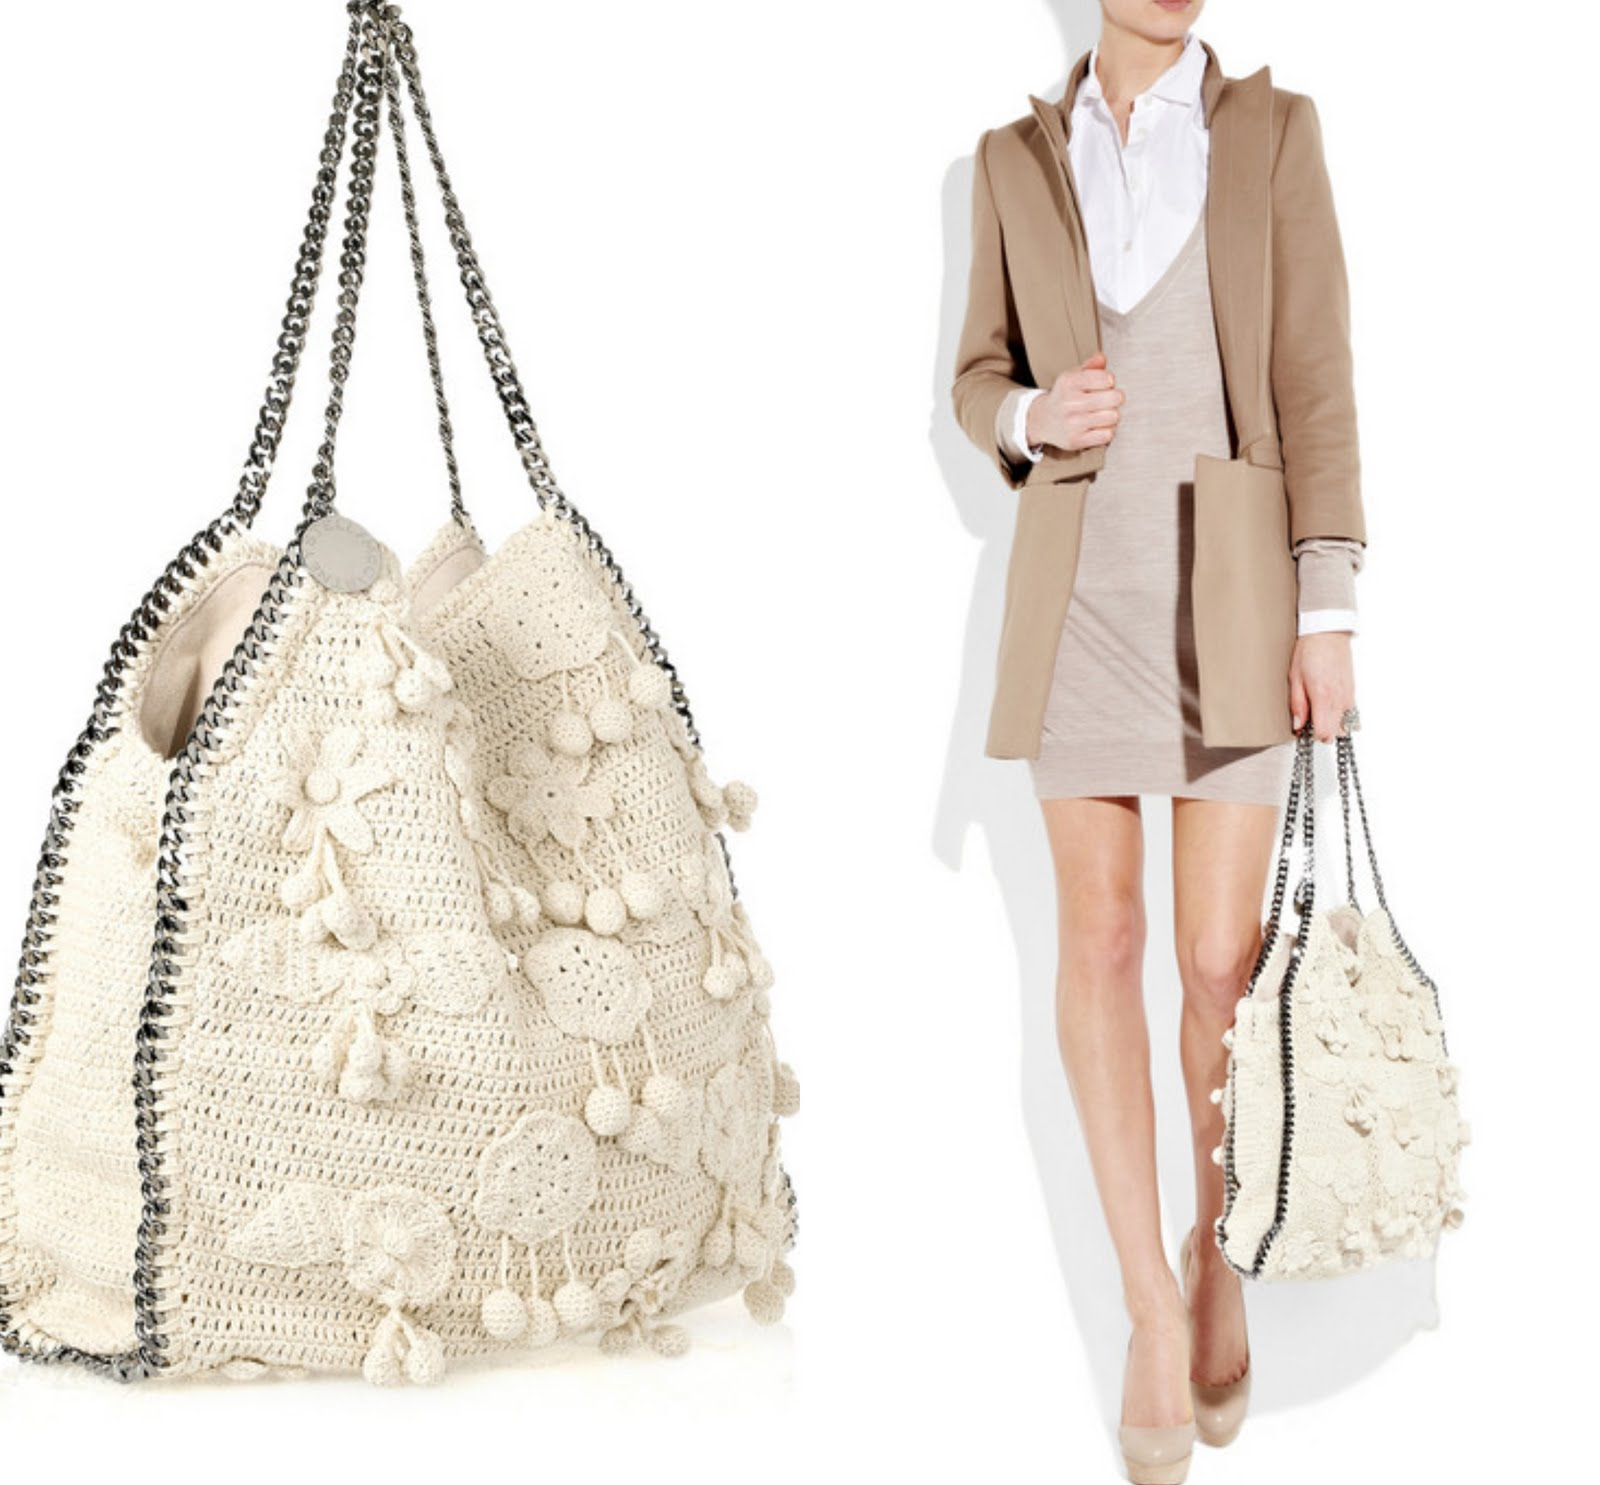 Designer Crochet Handbags : the falabella crochet bag is not only a designer bag